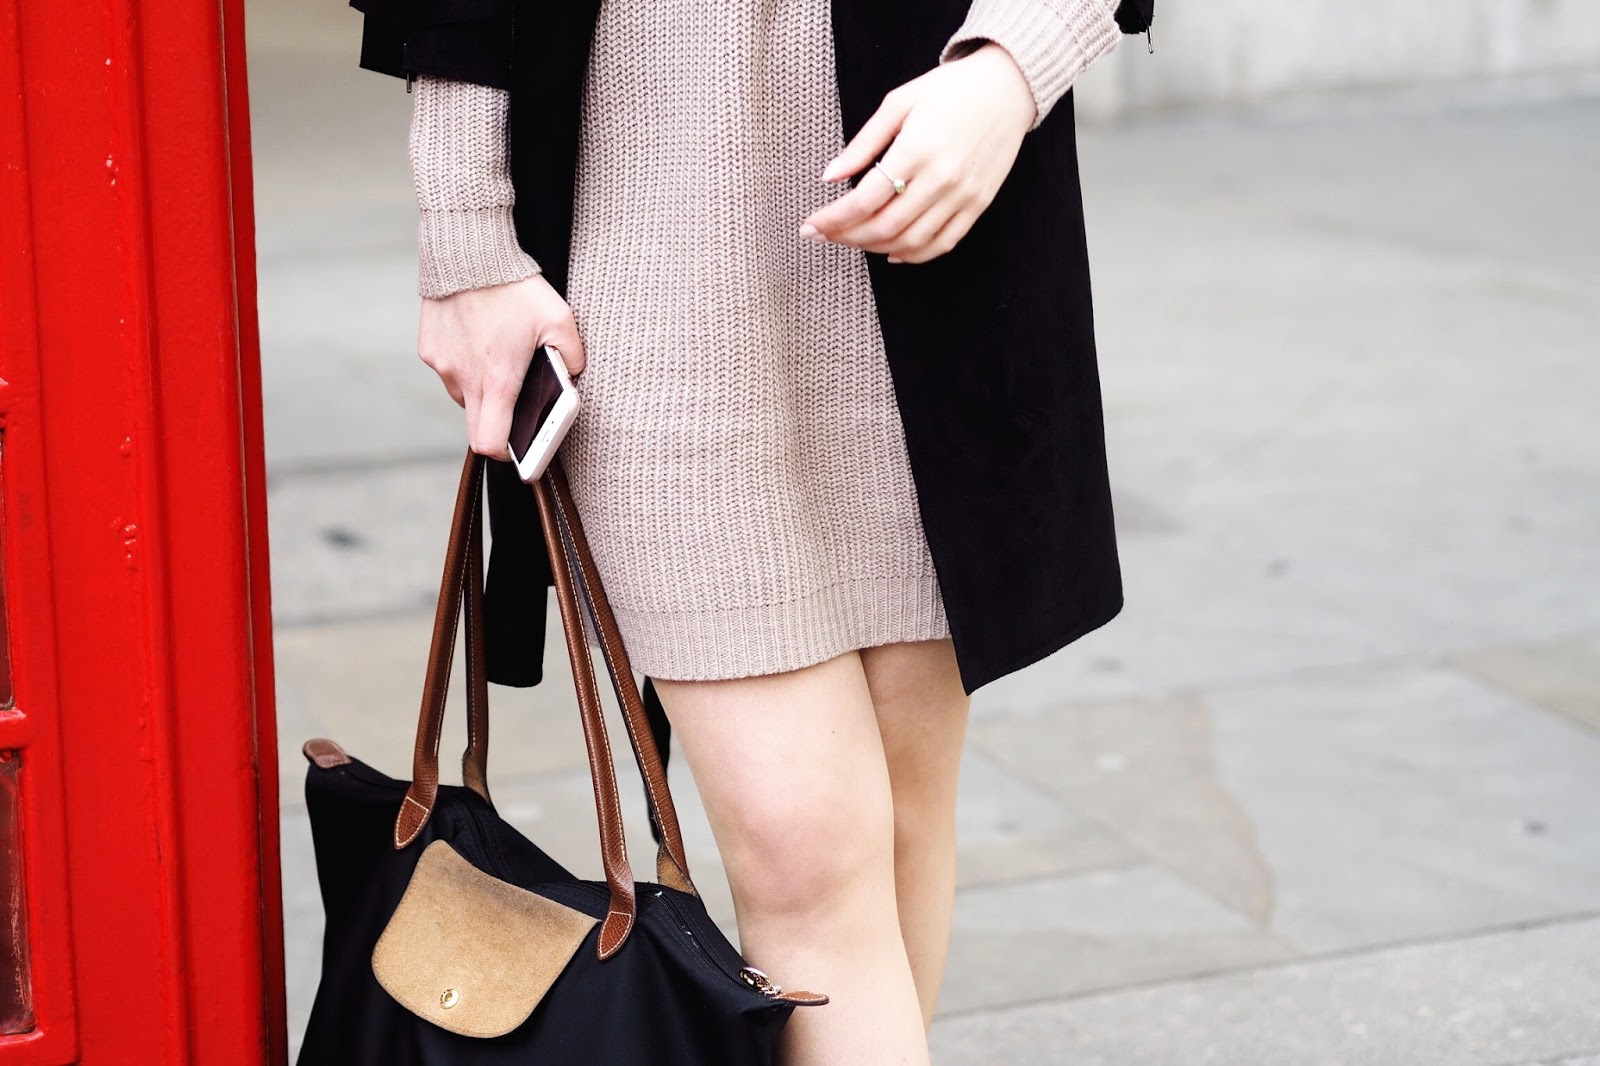 Petite jumper dresses autumn winter fashion style bloggers blog post ASOS Daniel Wellington discount code november 2017